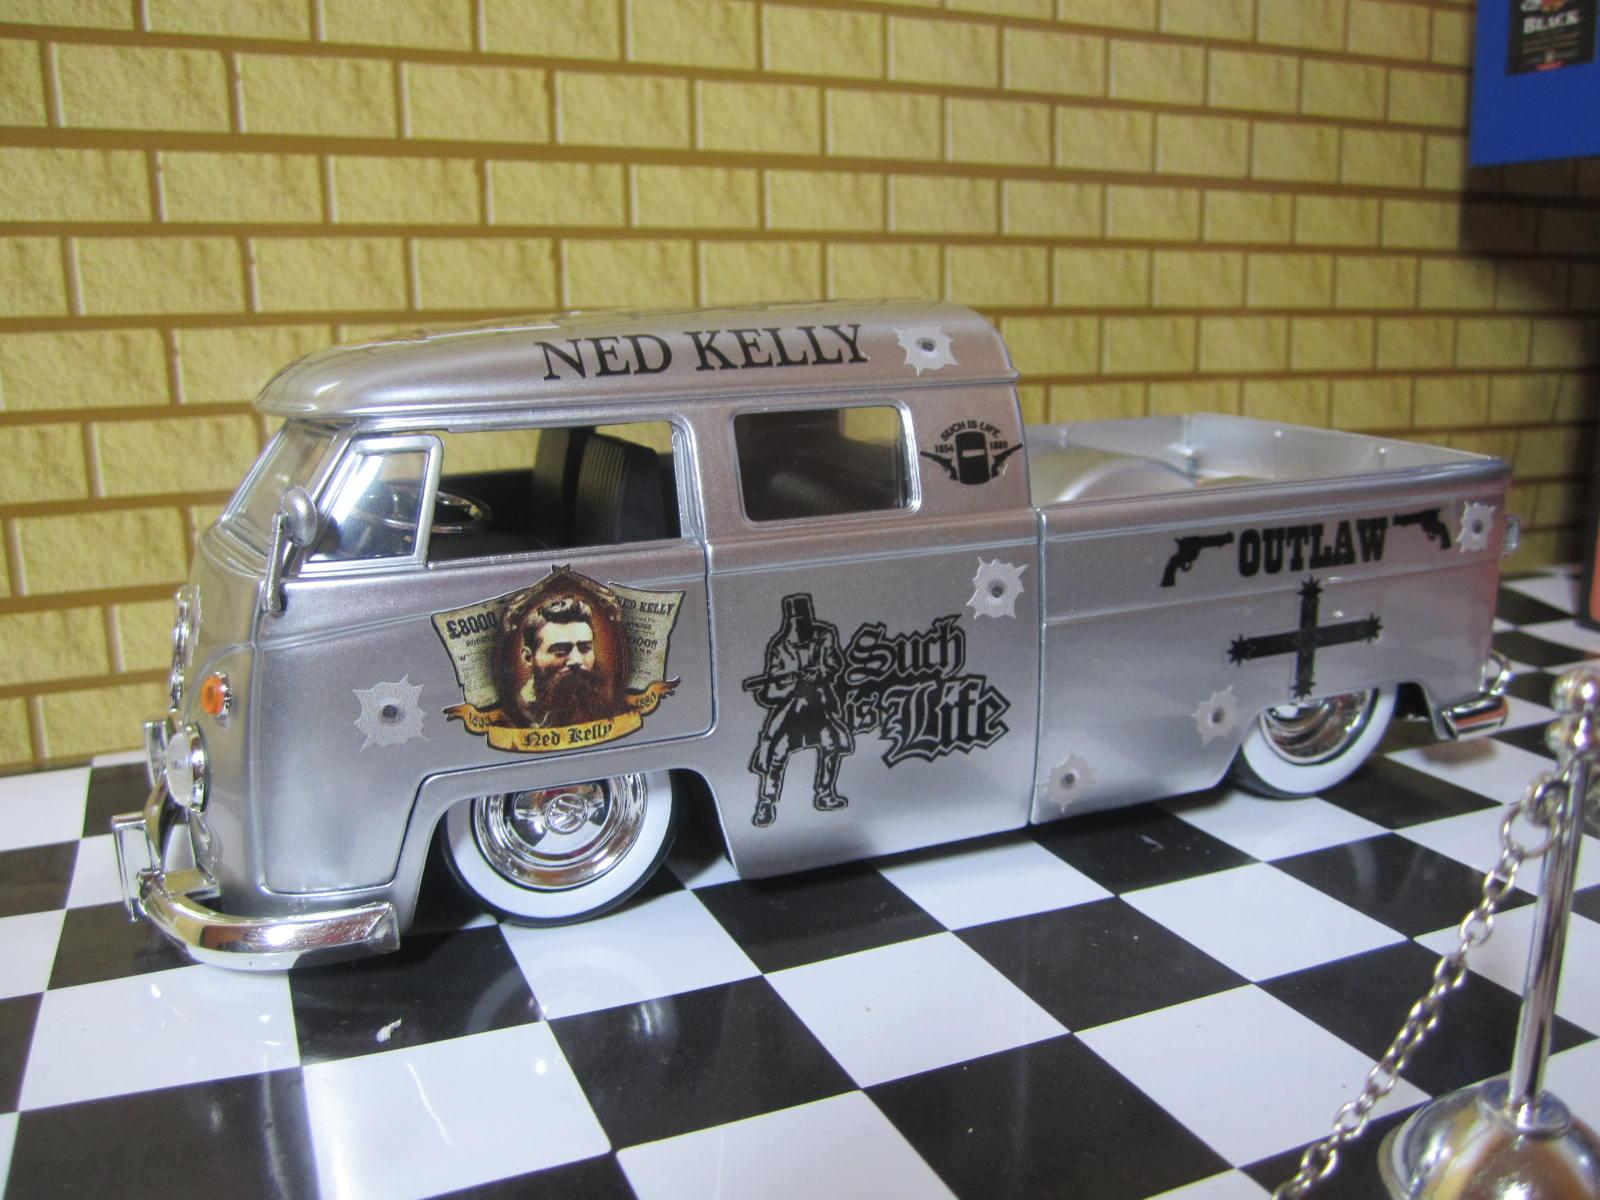 1963-VW-Bus-Pickup-Ute-1-24-Custom-Ned-Kelly-Code3-Diecast-Barware-Mancave